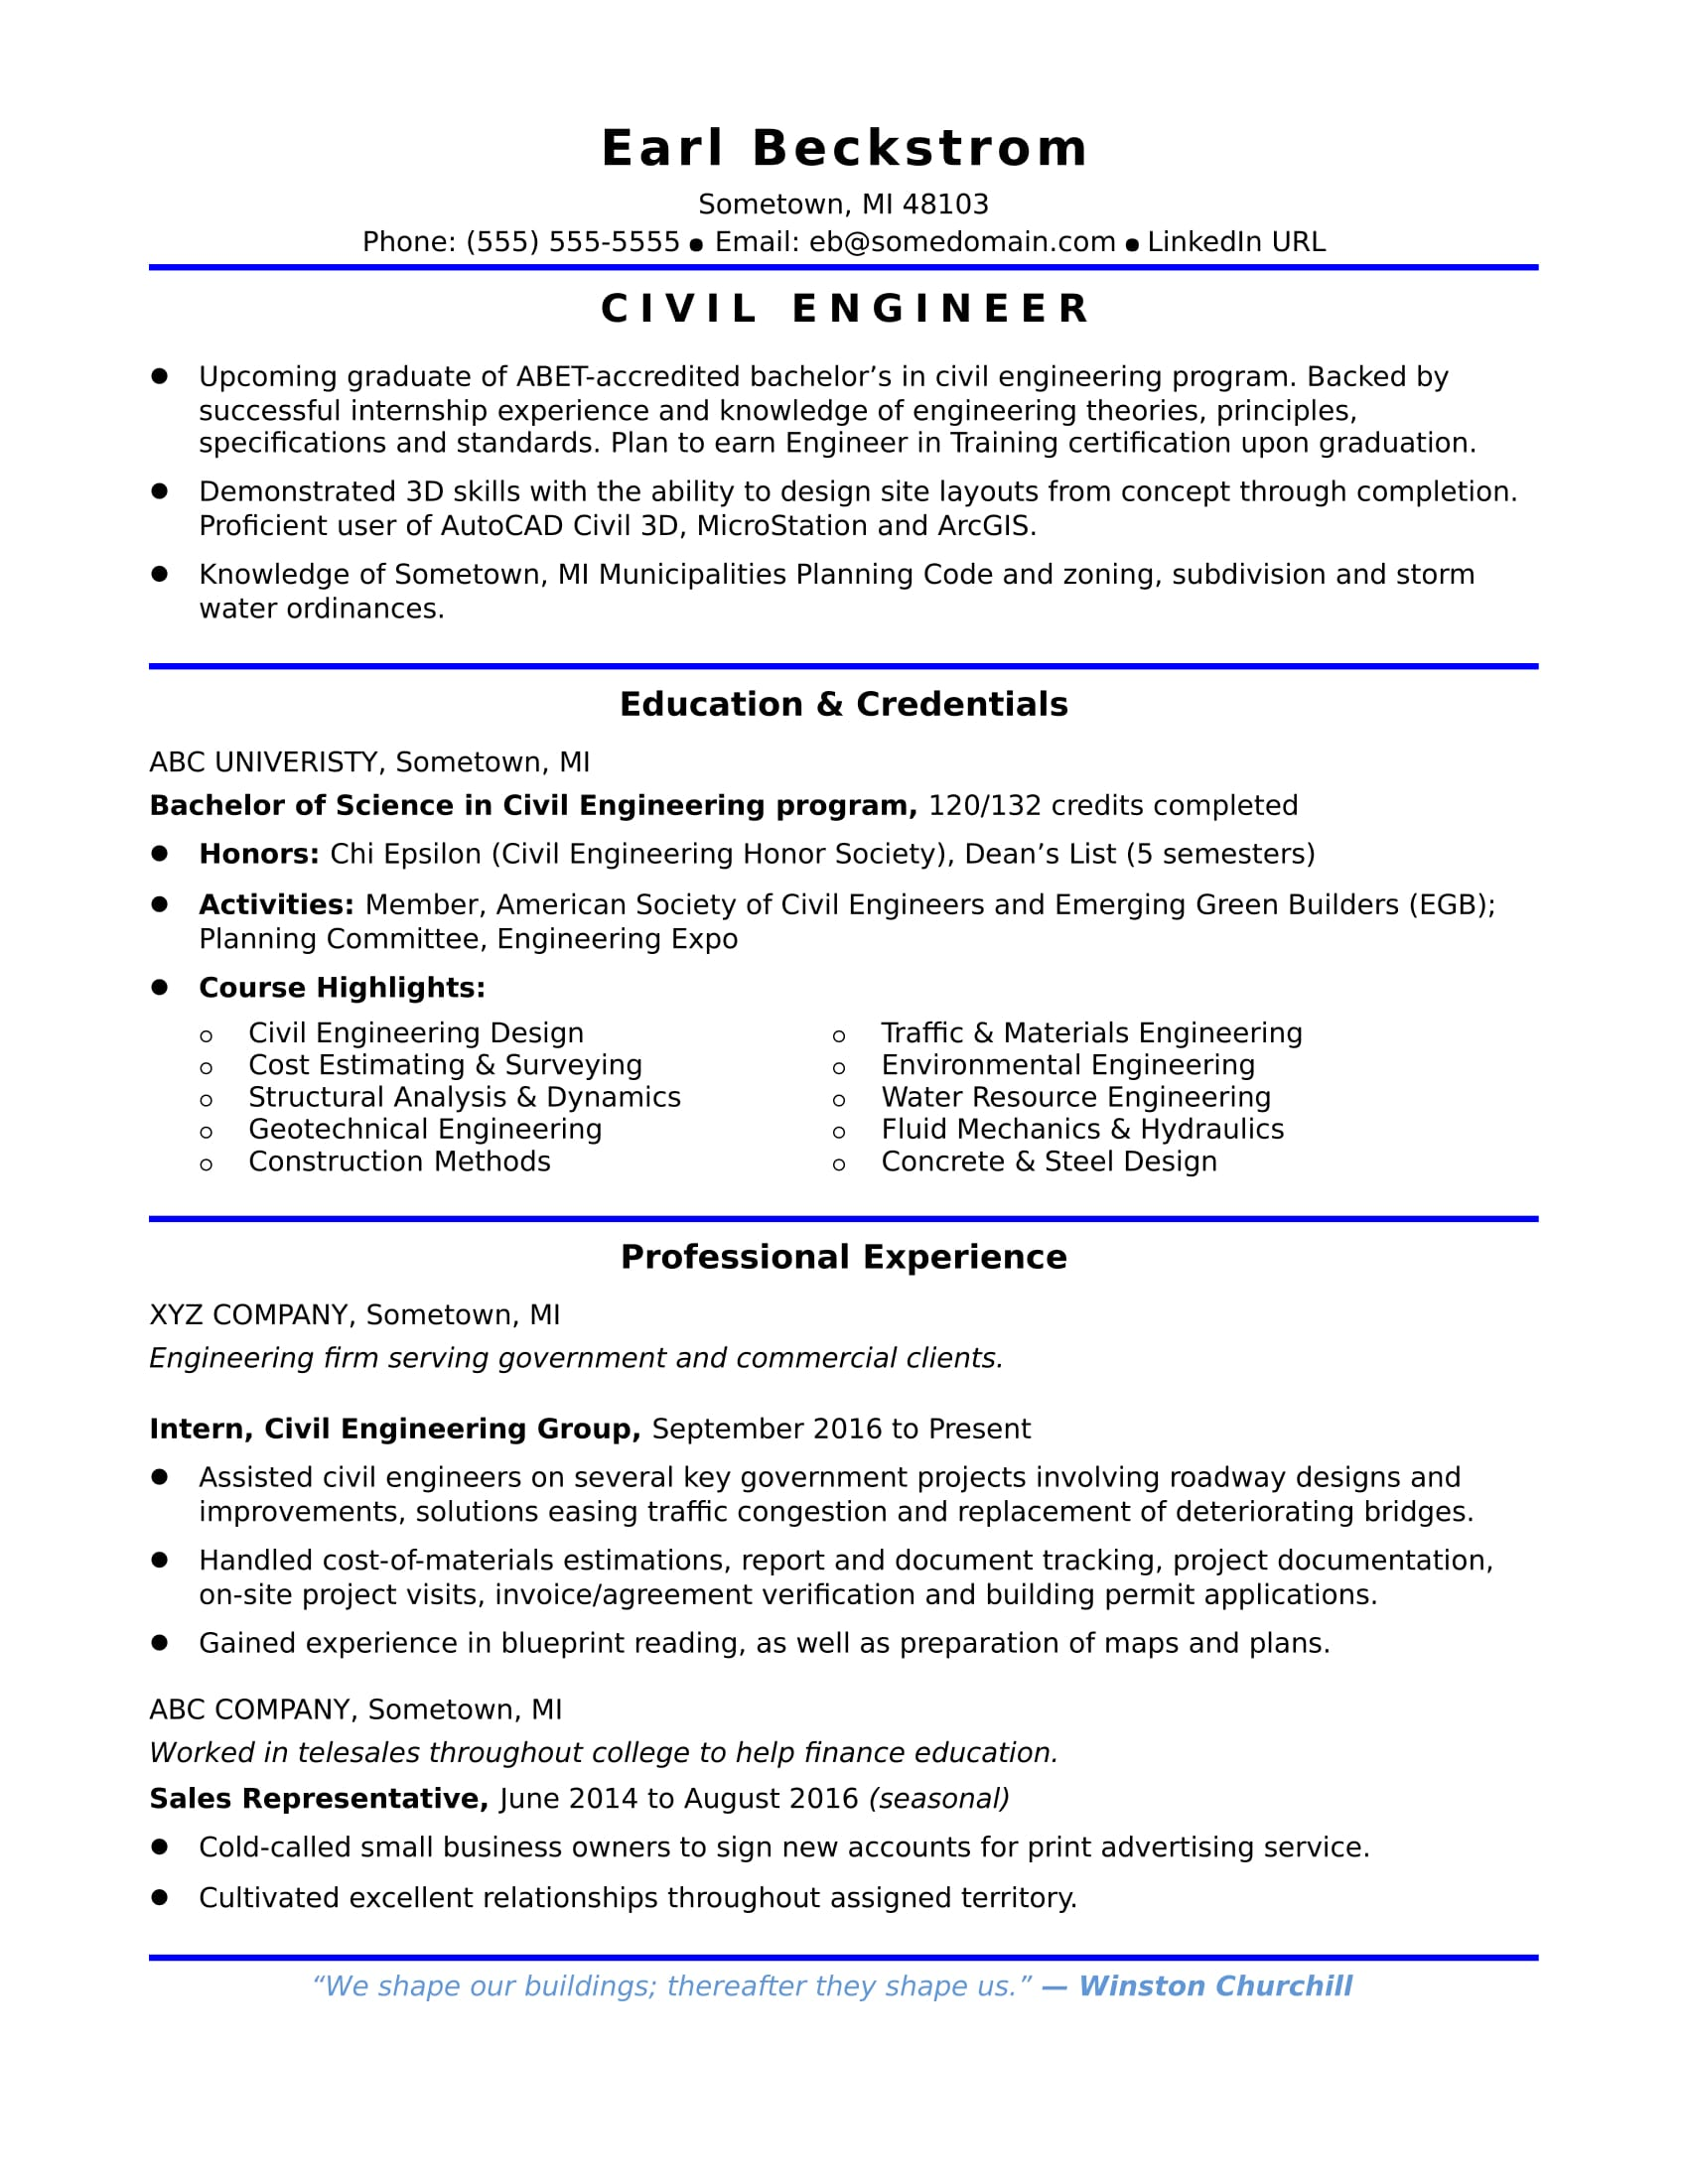 Sample Resume for an EntryLevel Civil Engineer Monstercom